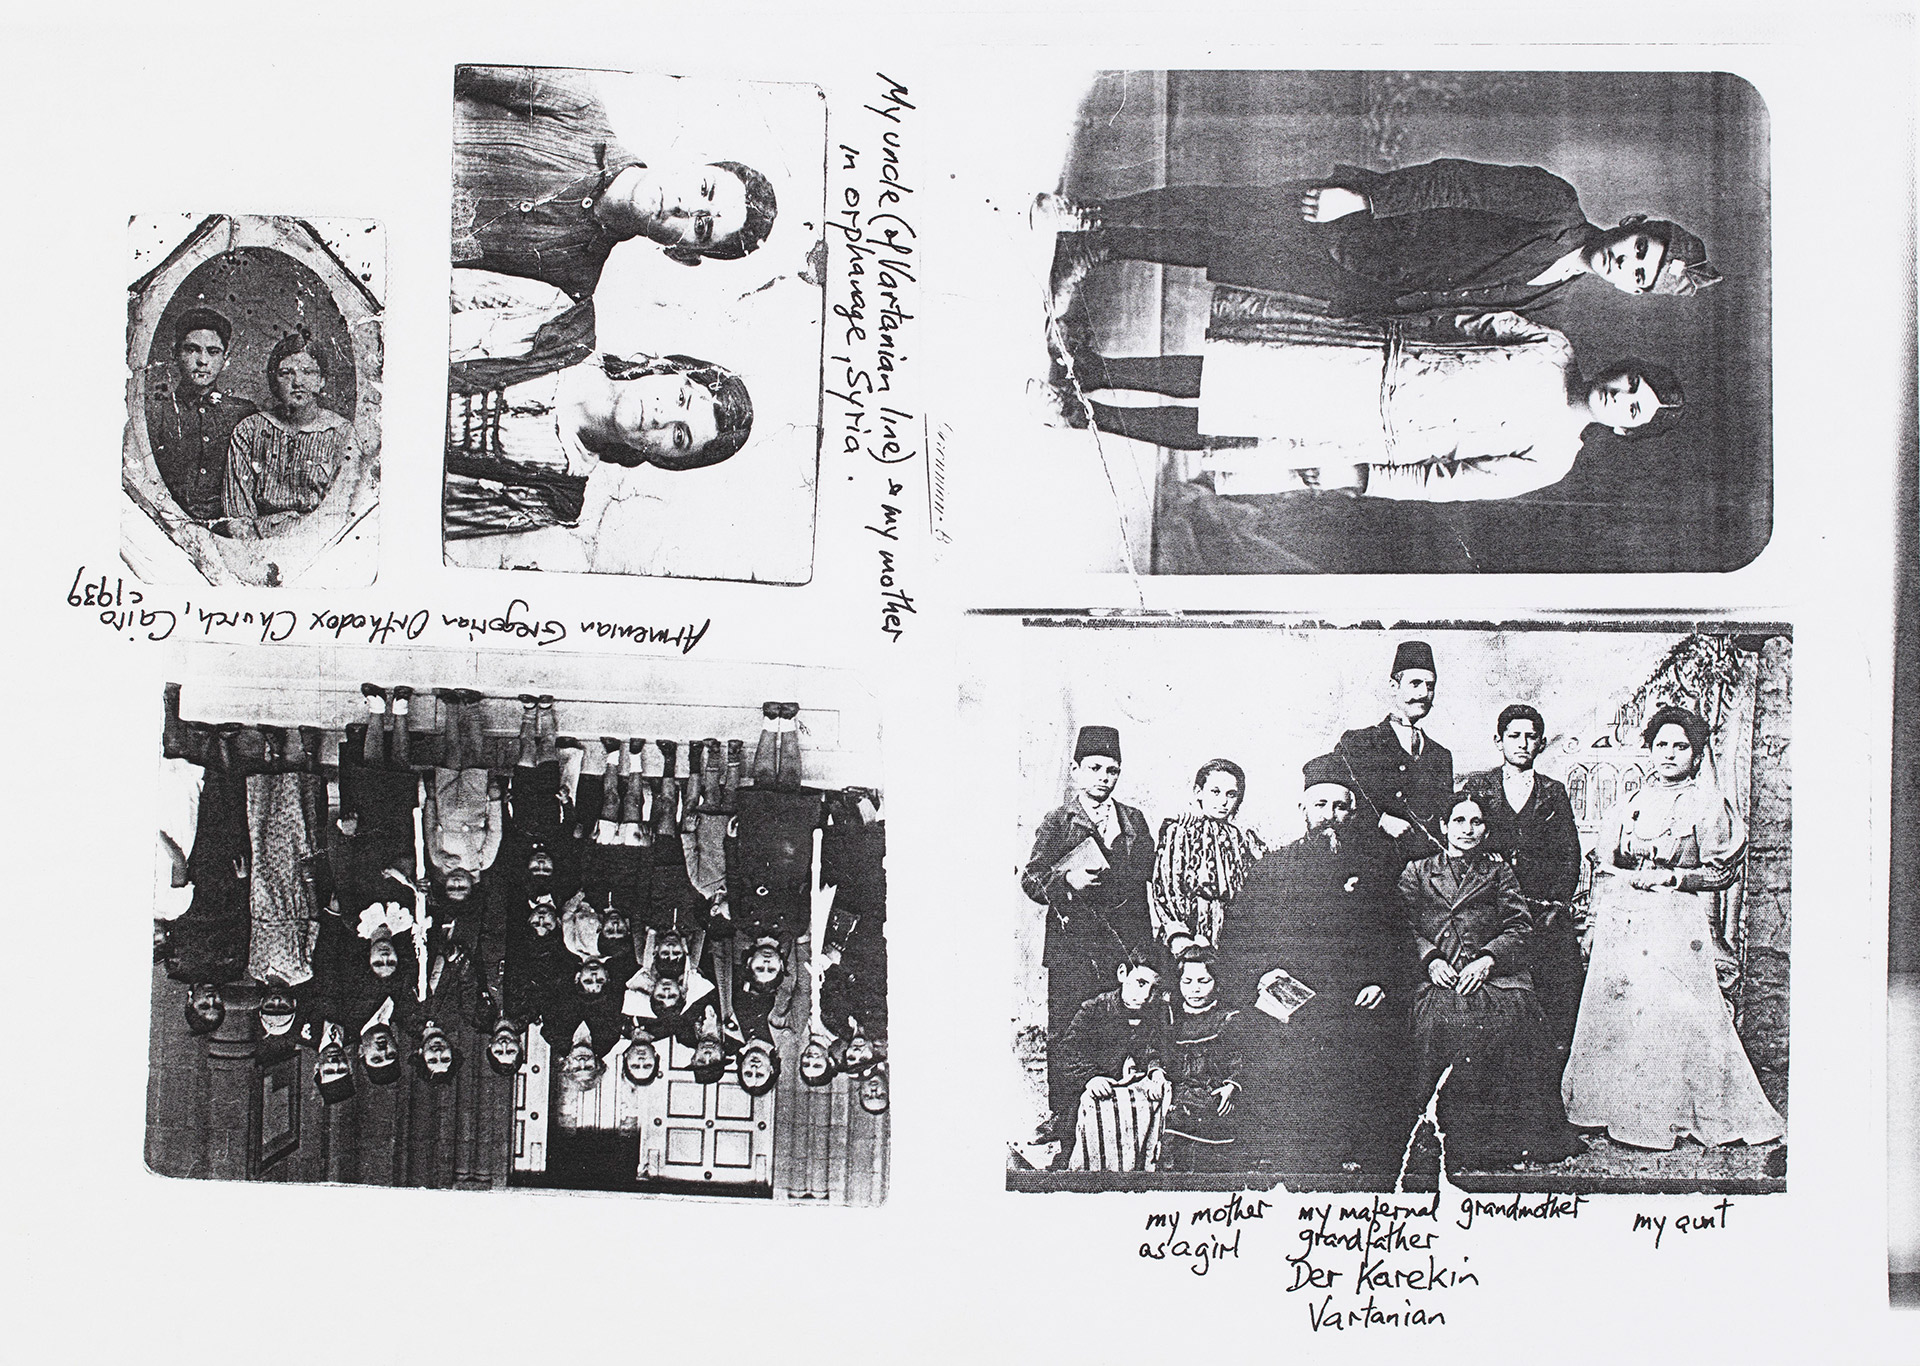 A collection of images, photocopied on an A4-sized paper.